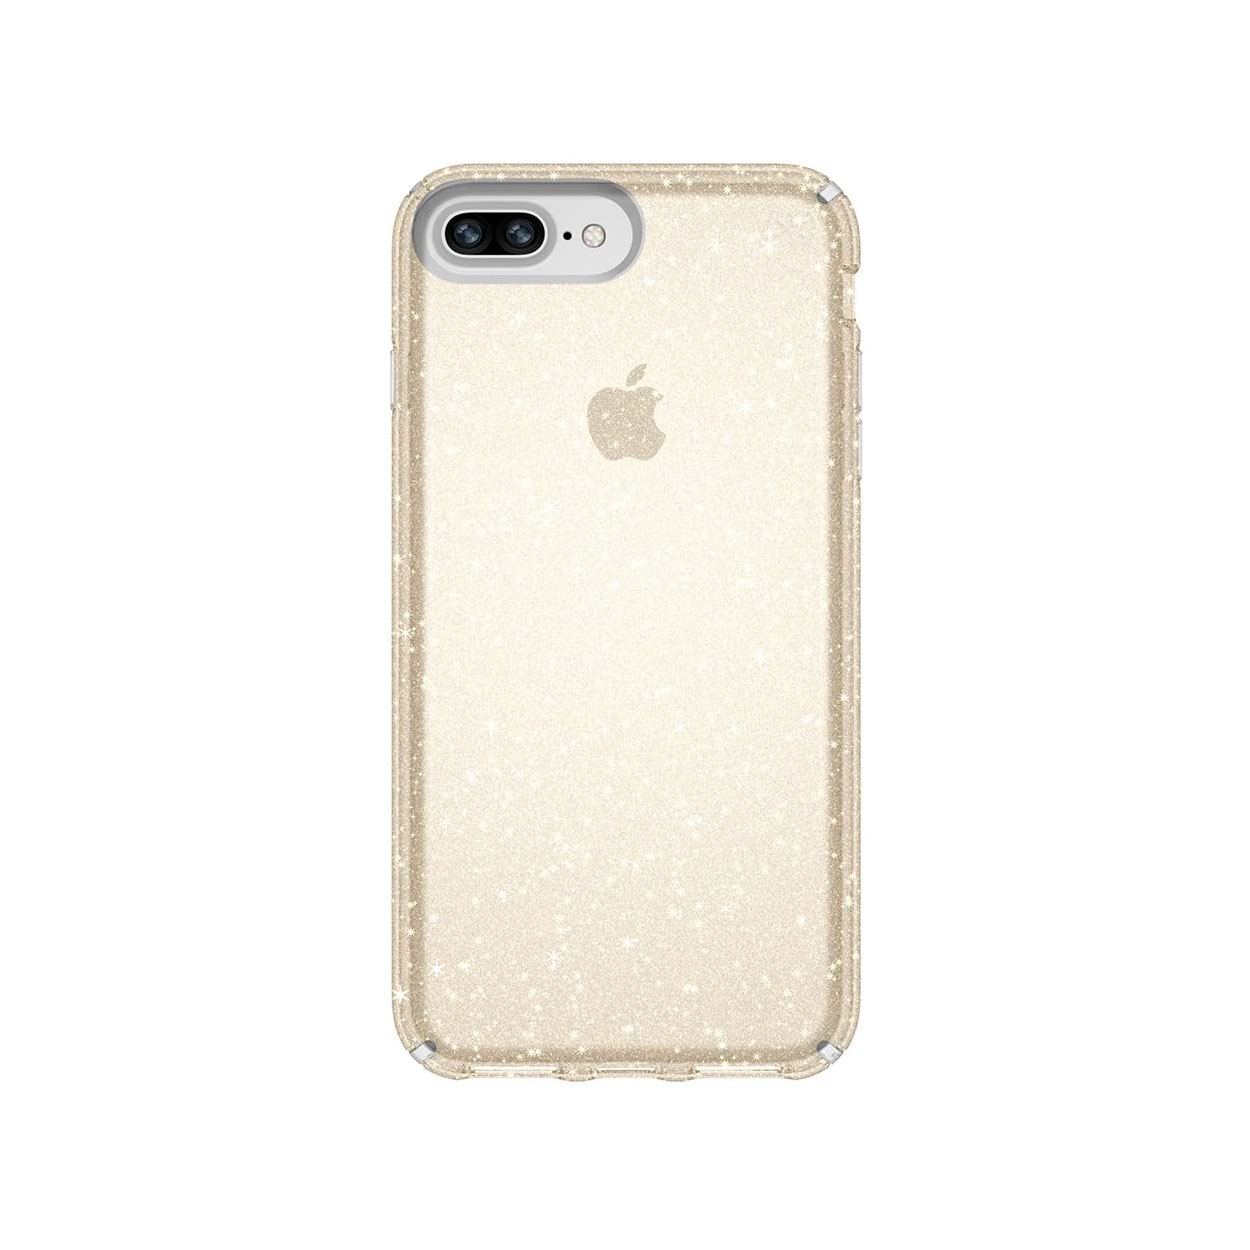 Speck Presidio Clear + Glitter Case for iPhone 8 Plus, 7 Plus - Clear With Gold Glitter